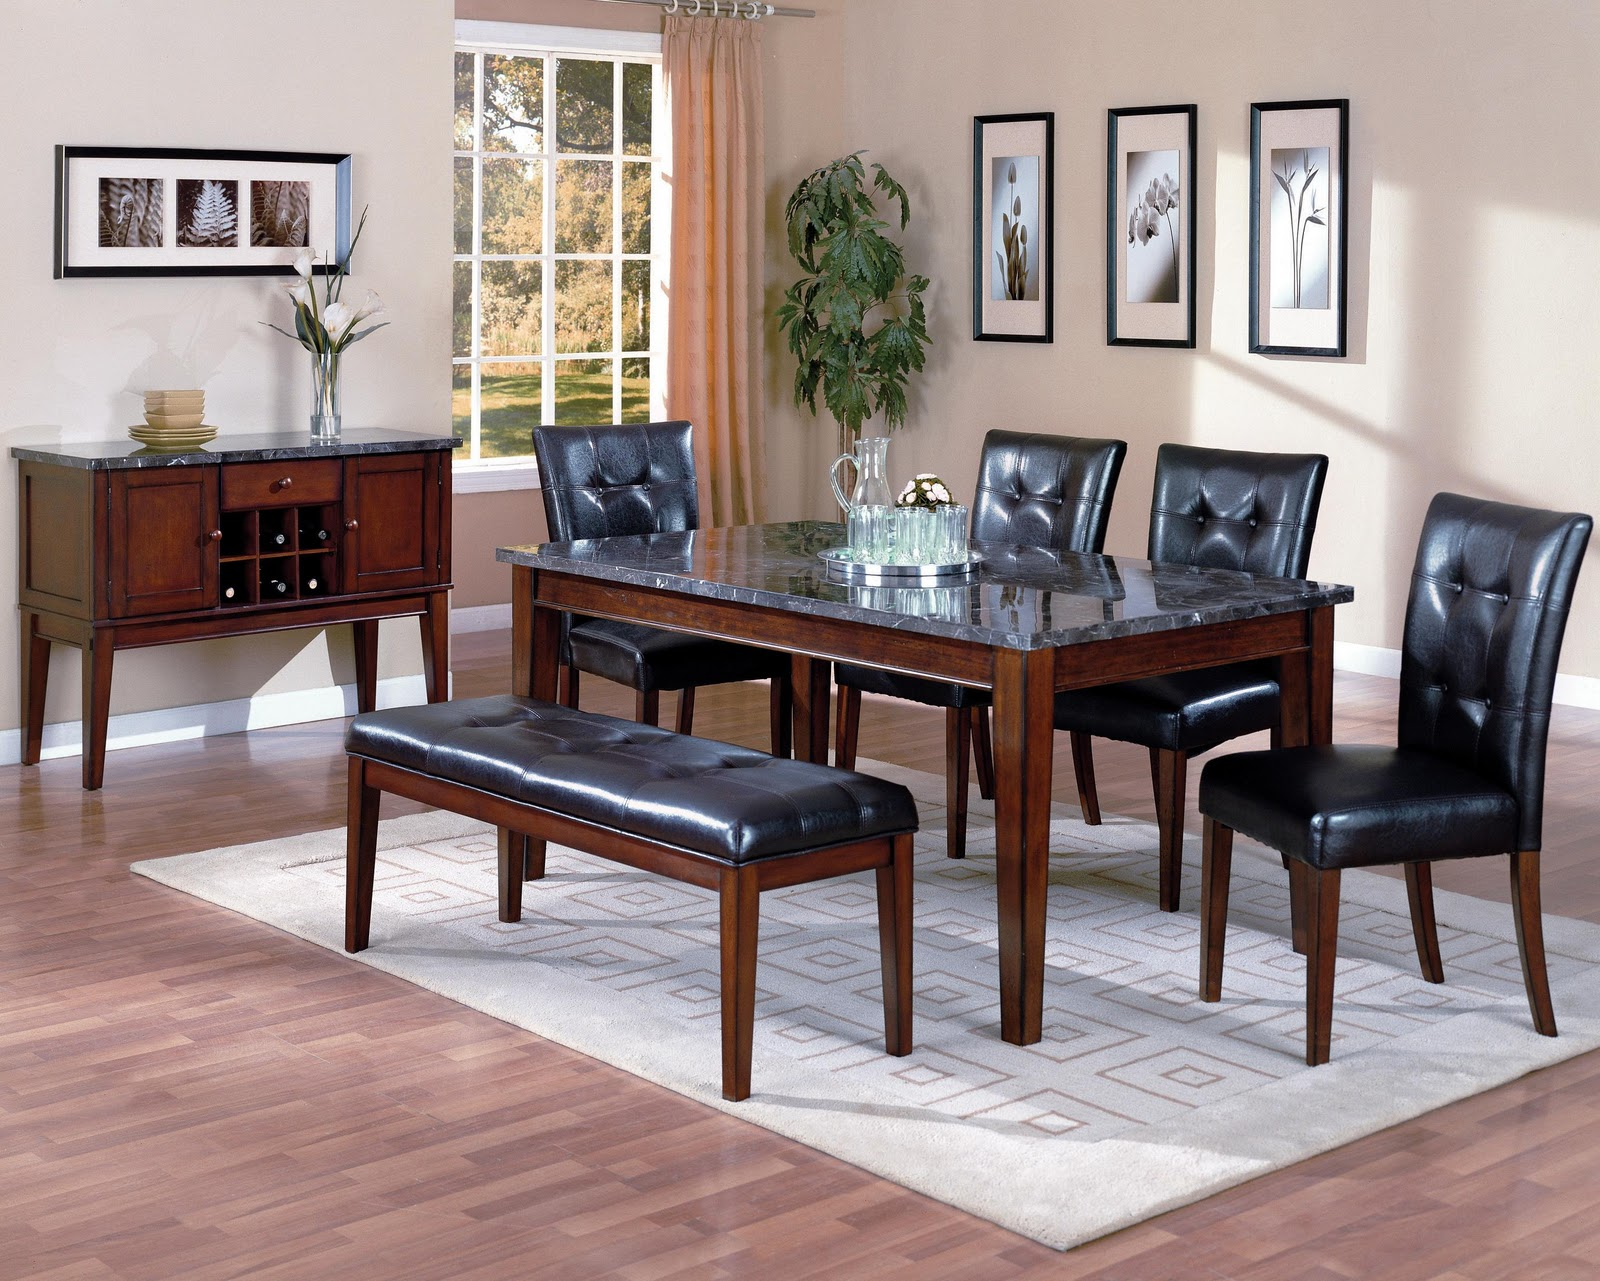 World Imports U2013 6284 Dining Room Set U2013 Royal Furniture Outlet U2013  215 355 2880 U2013 SPOTLIGHT ITEM